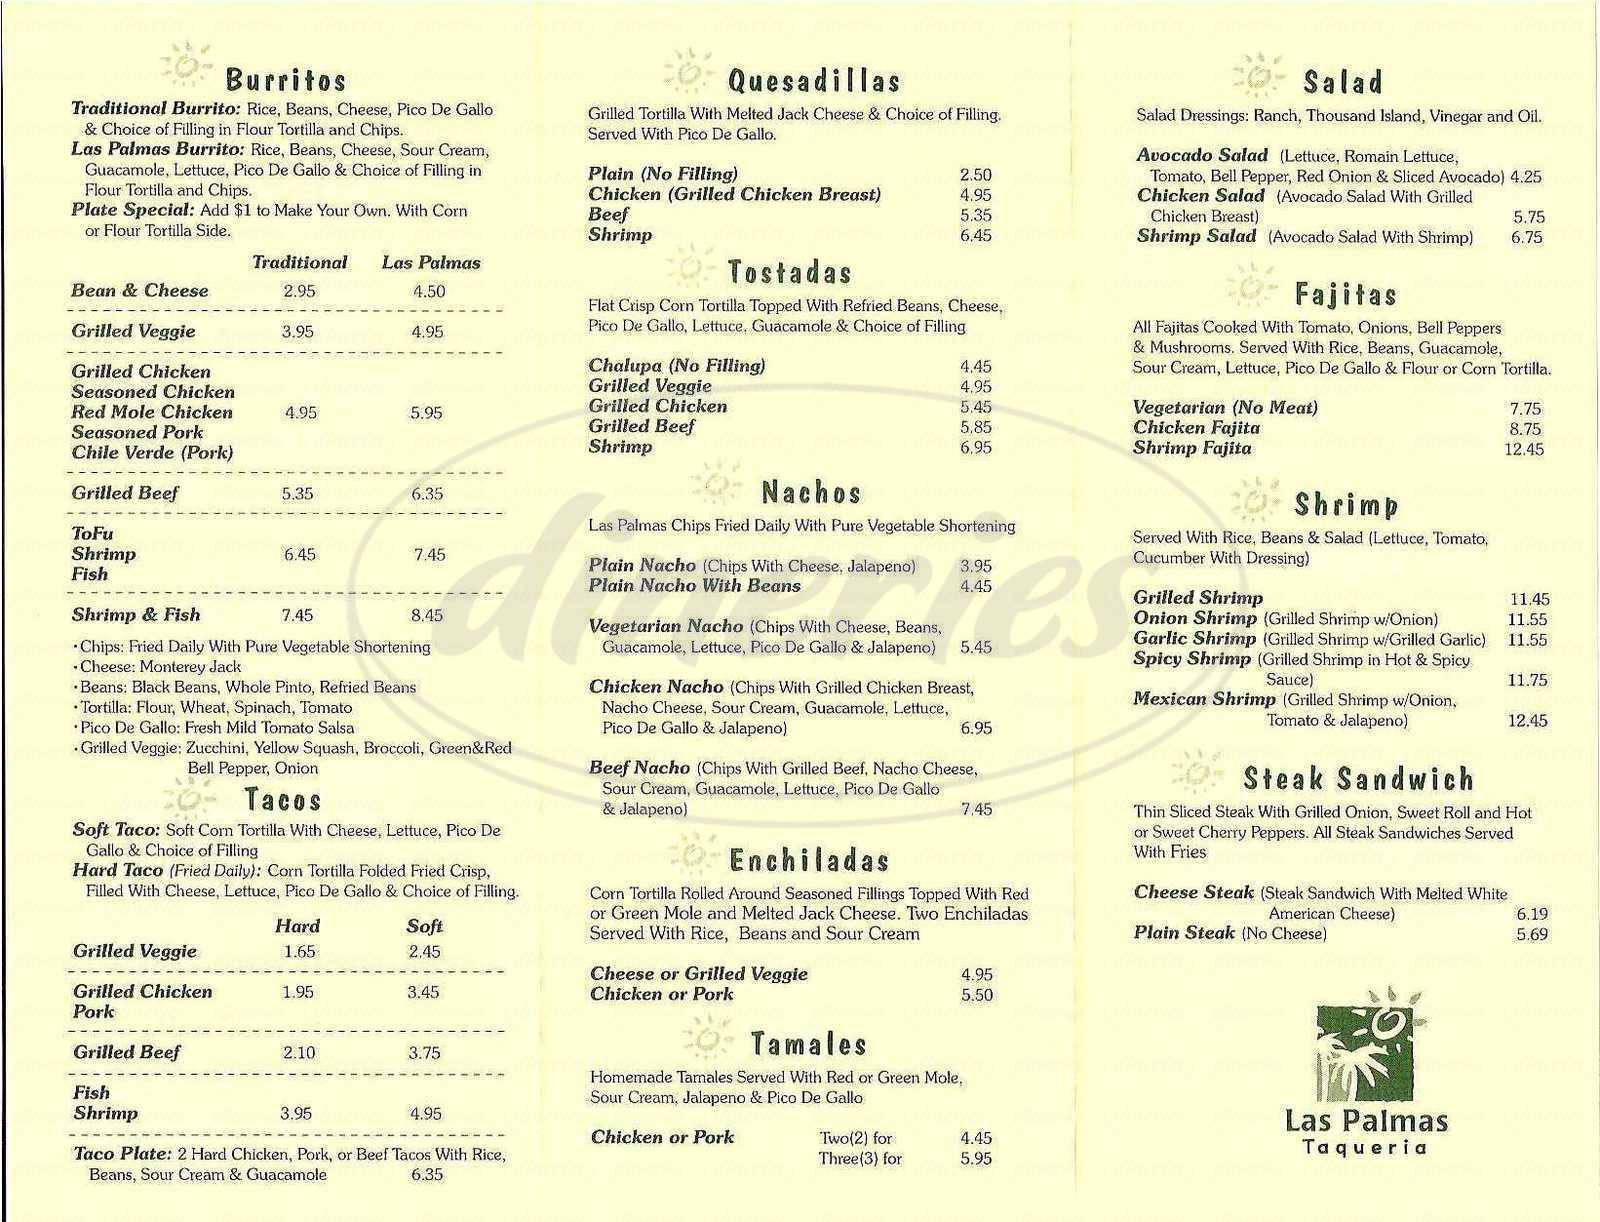 menu for Las Palmas